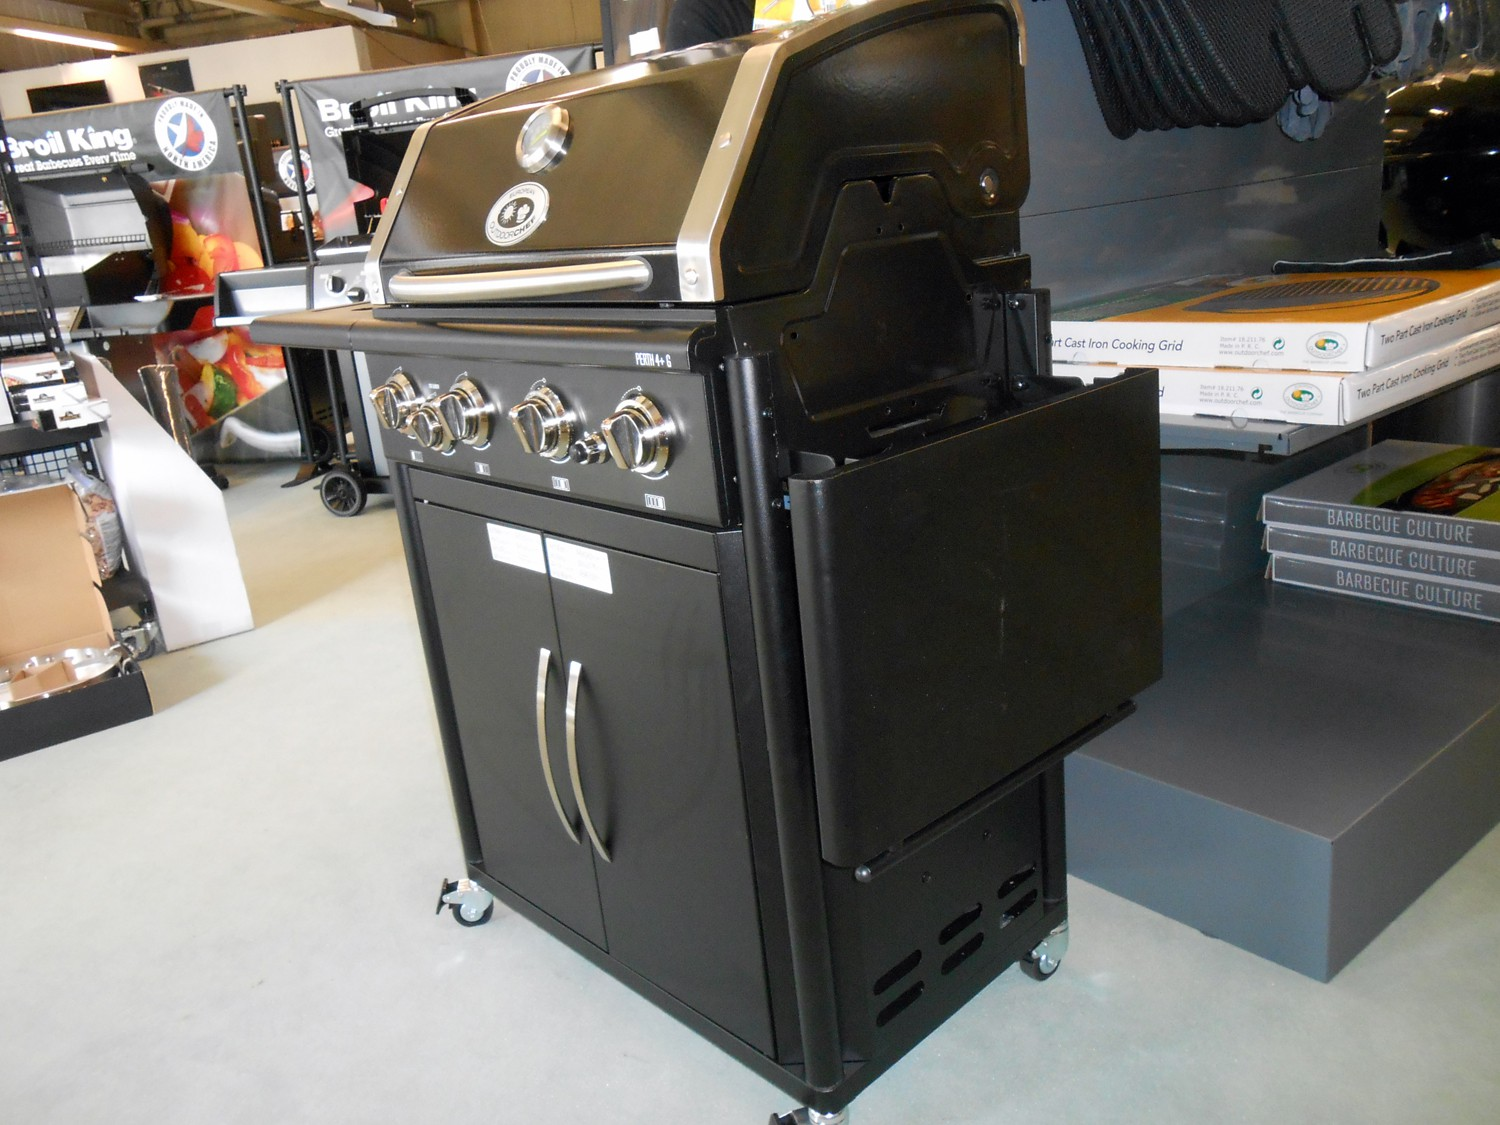 outdoorchef gasgrill perth kleinster mobiler gasgrill. Black Bedroom Furniture Sets. Home Design Ideas